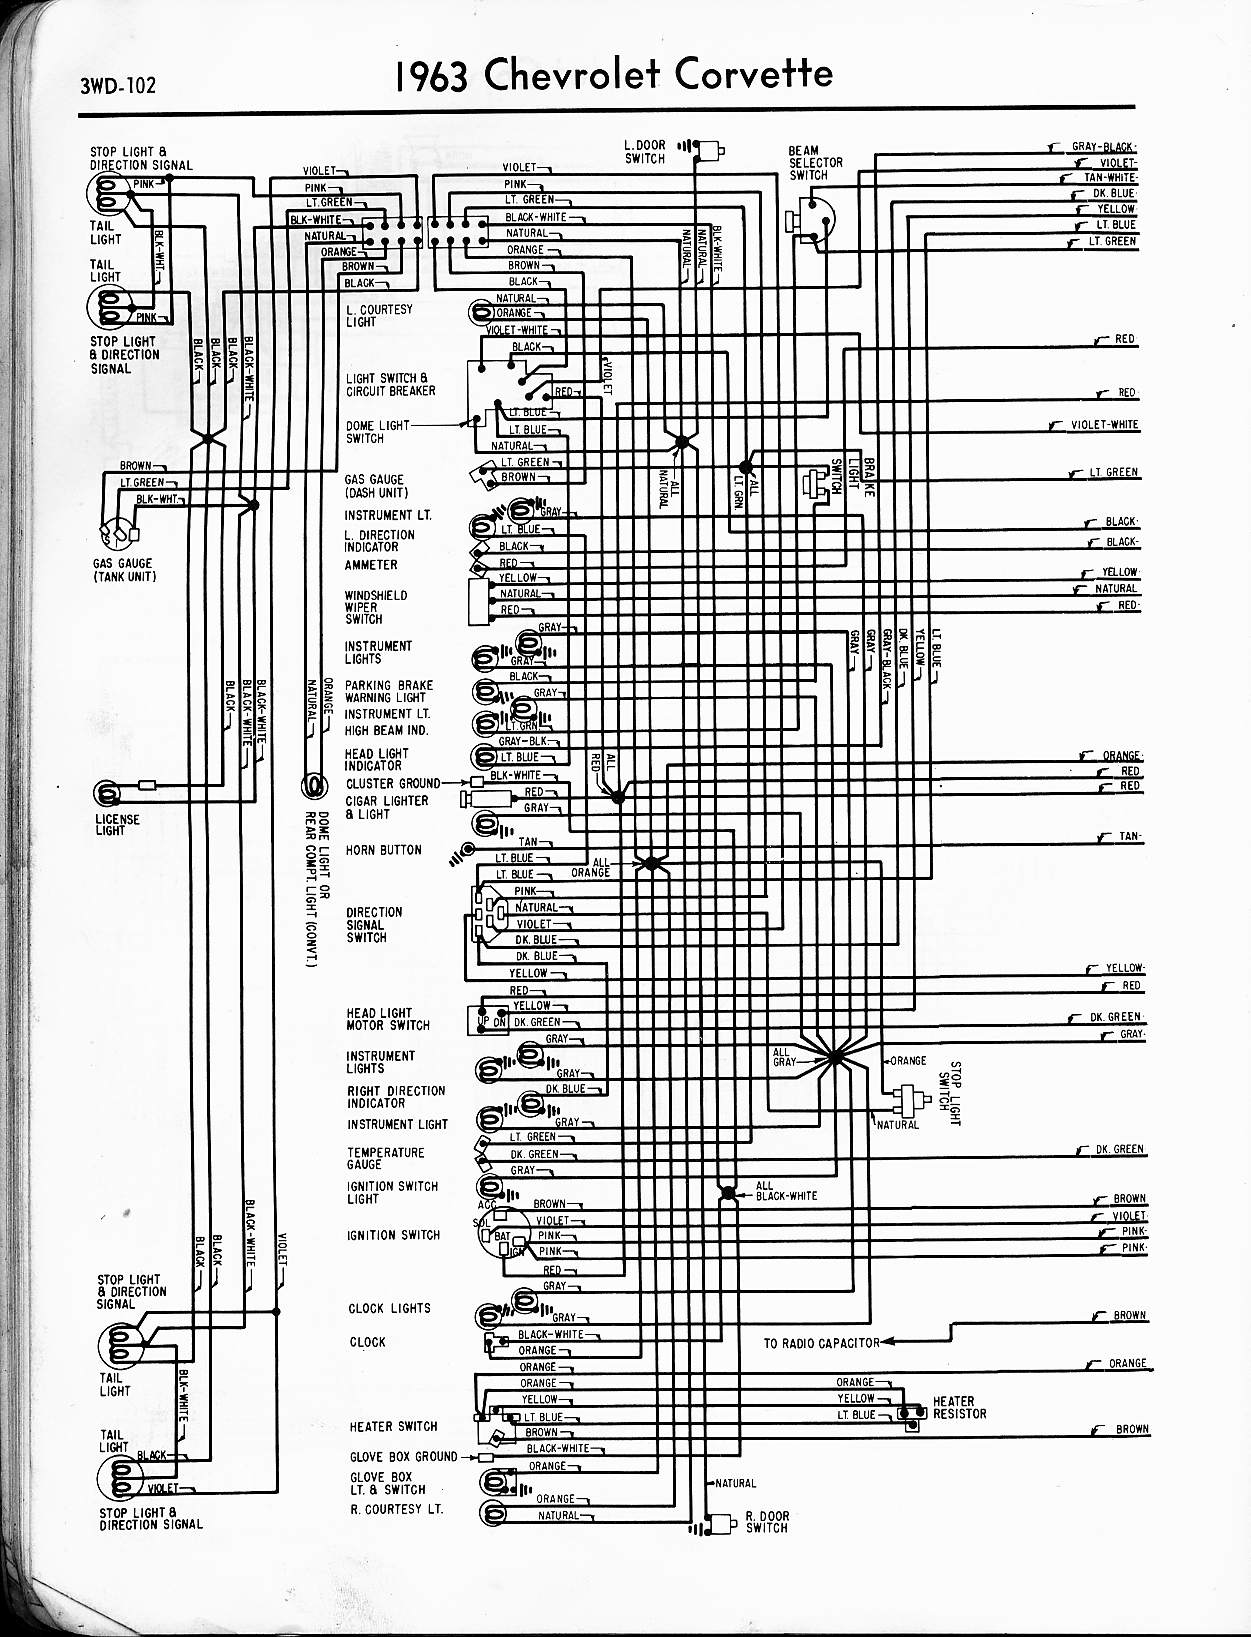 Corvette Wiring Diagram Archive Of Automotive 76 Nova Schemes Rh Cabanaselgolfo Com 1976 Pdf 1978